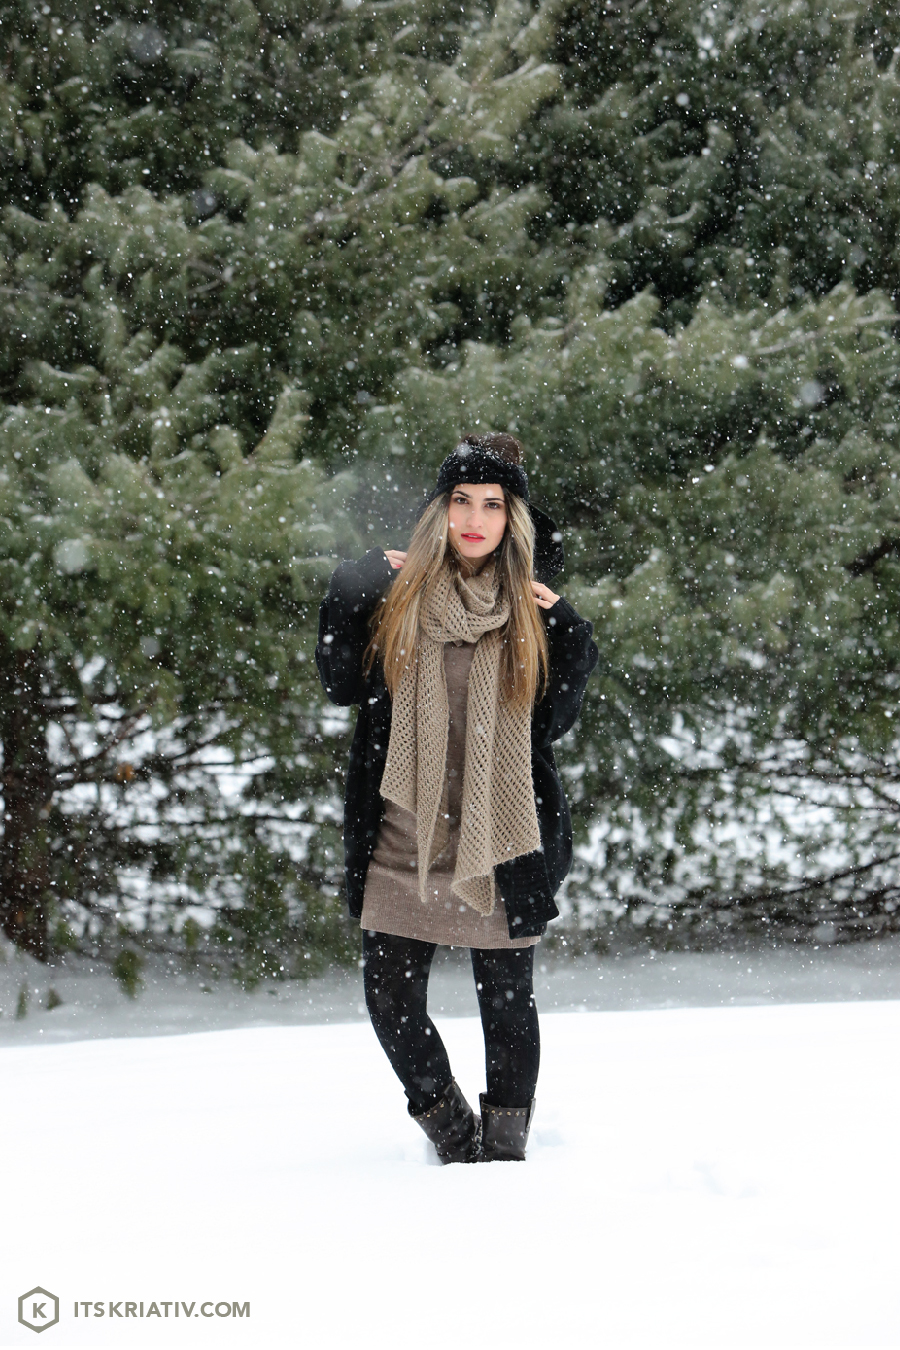 Its-Kriativ-Fashion-Let-It-Snow-Winter-02.jpg